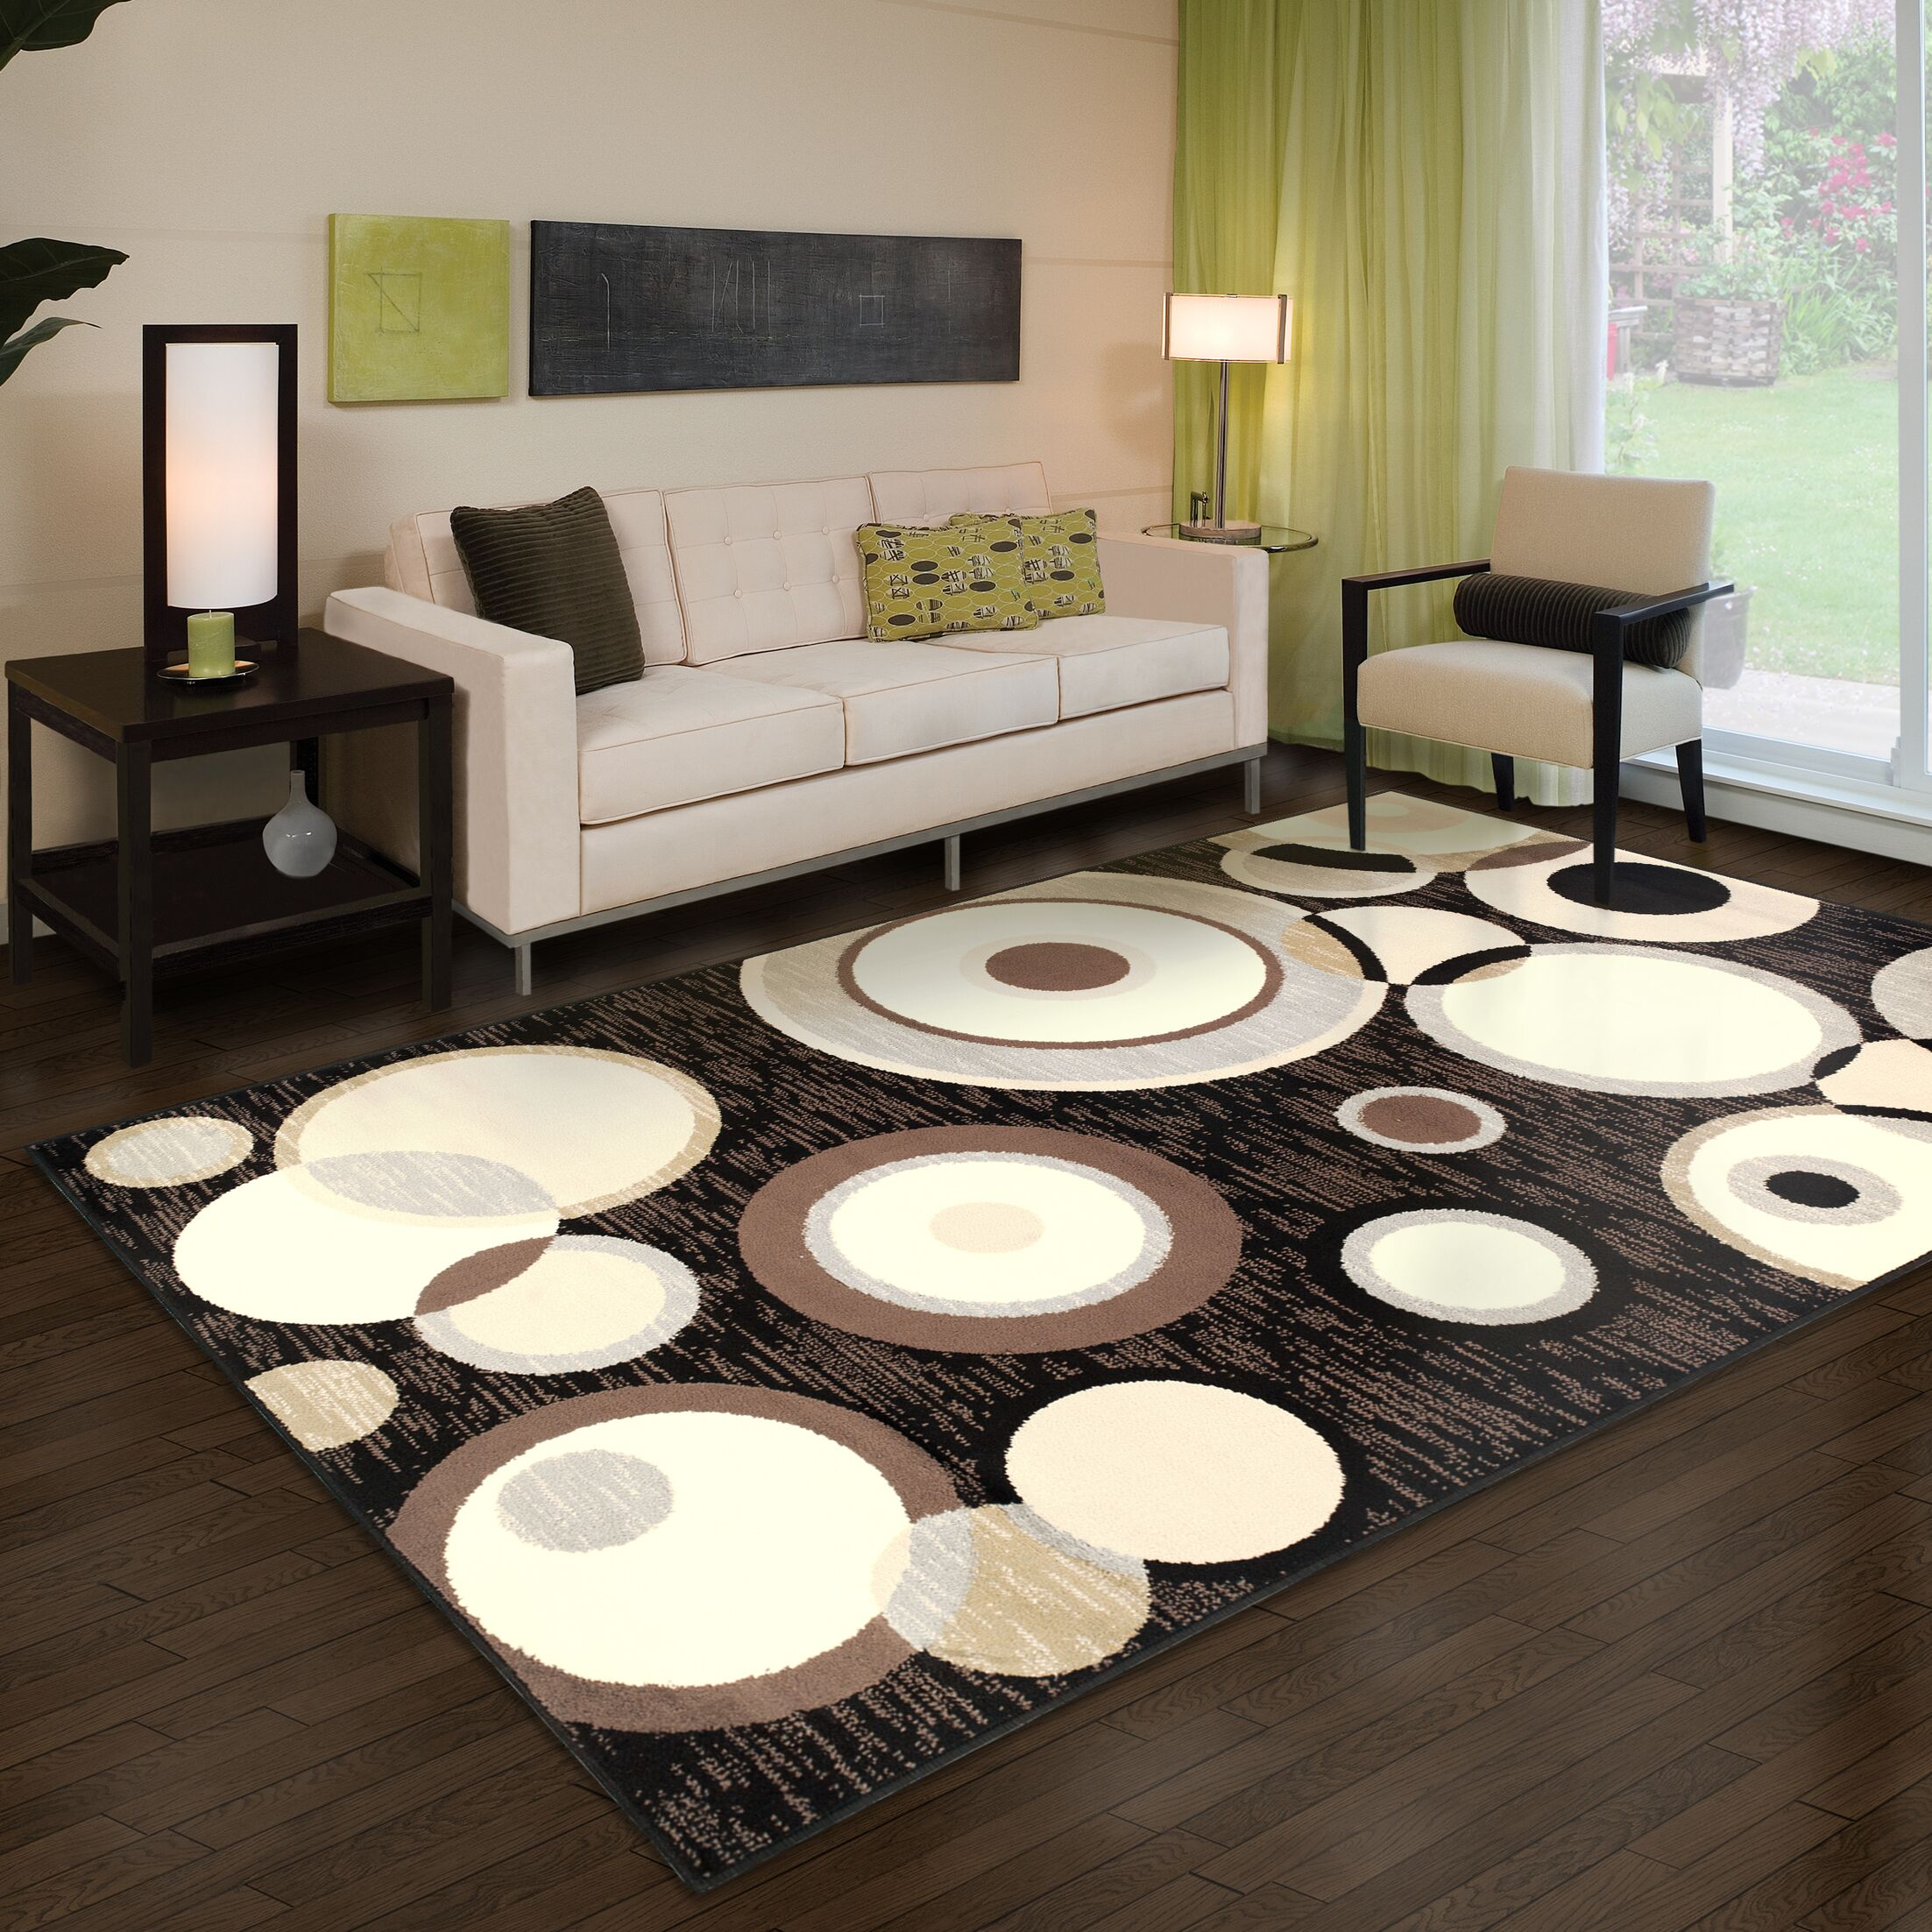 Bryleigh Black/Brown Area Rug Rug Size: Rectangle 8' x 10'